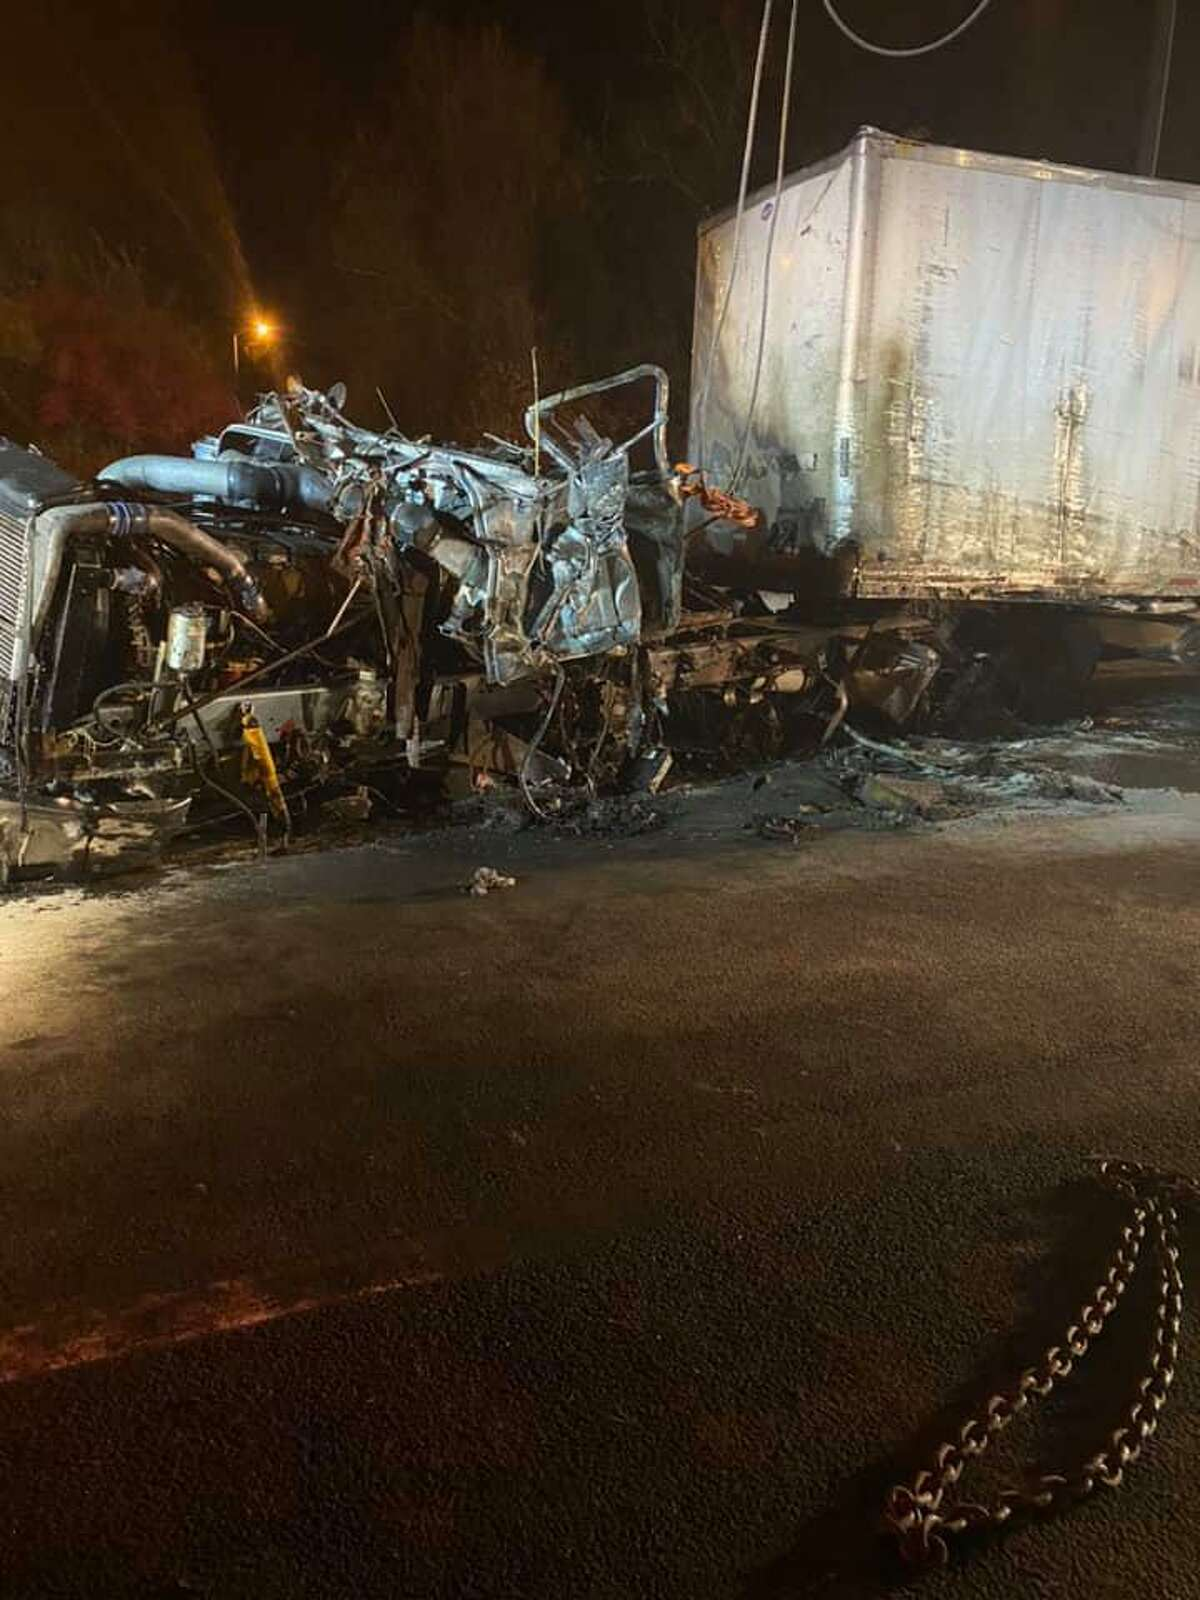 Crews on scene for a tractor-trailer rollover crash and fire on I-91 in East Windsor, Conn., on Tuesday, Nov. 10, 2020.